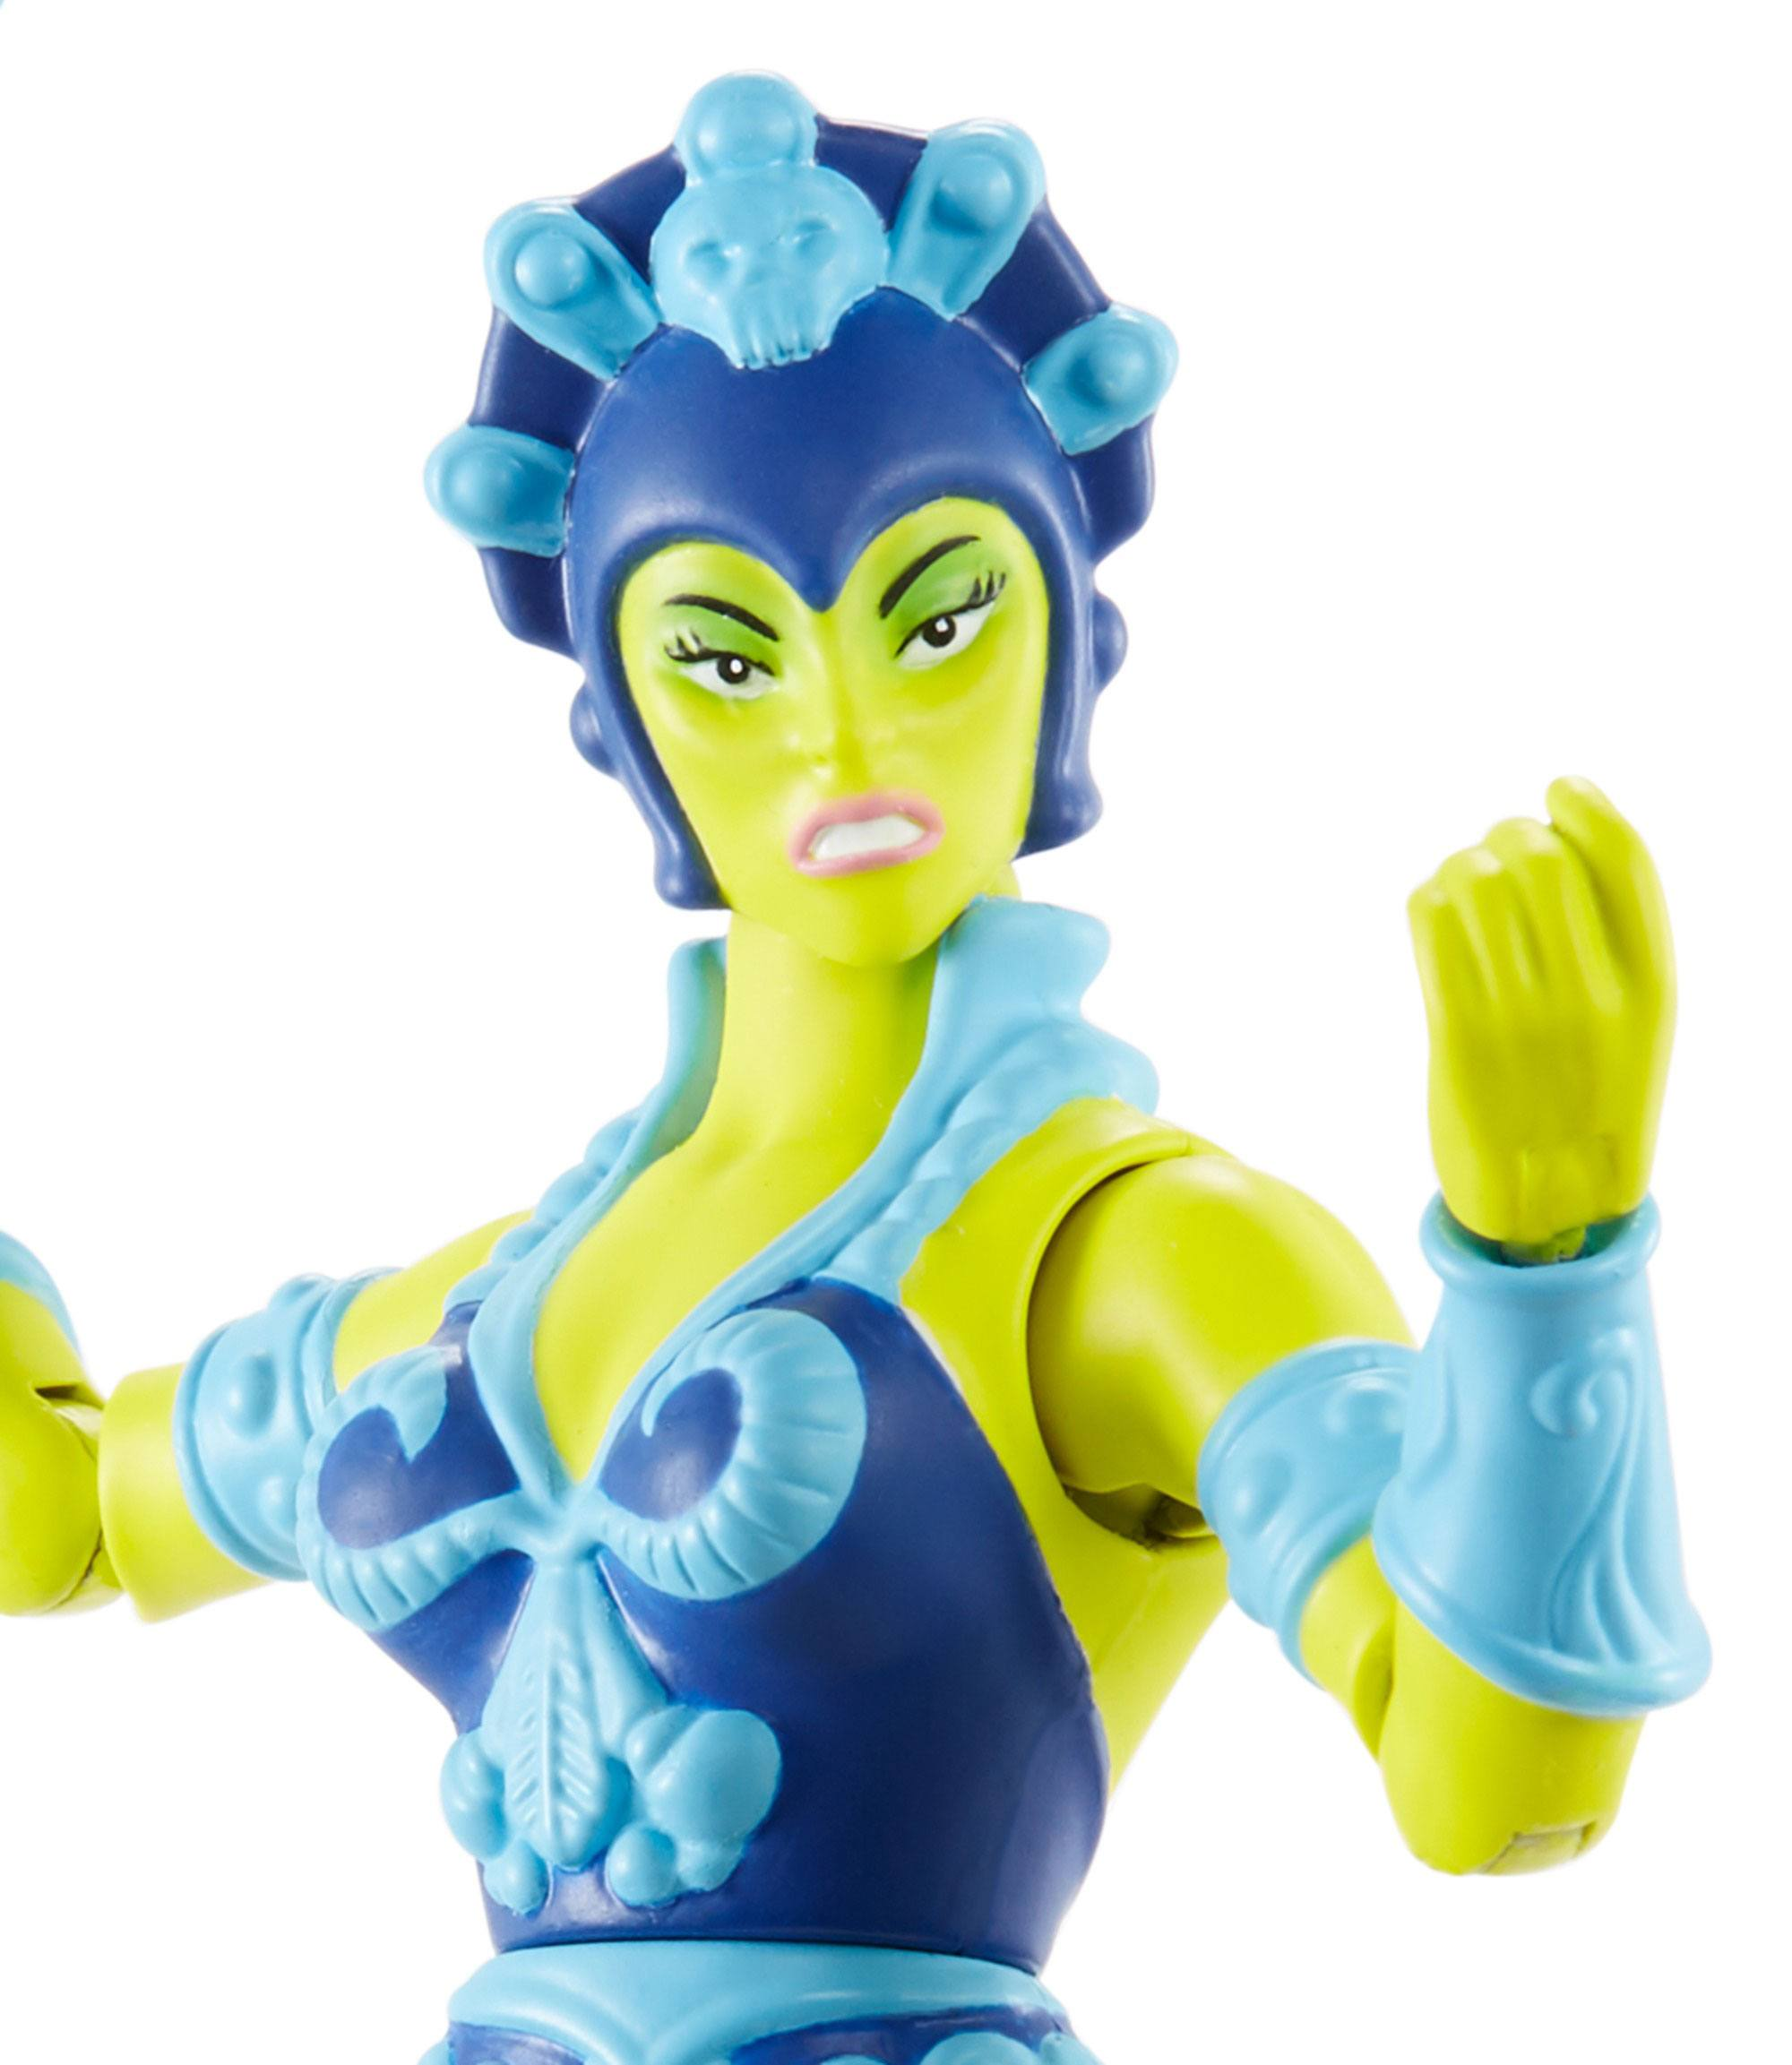 New for 20 Masters of the Universe Origins Actionfigur 2020 Evil-Lyn 14 cm MATTGNN90 0887961875423